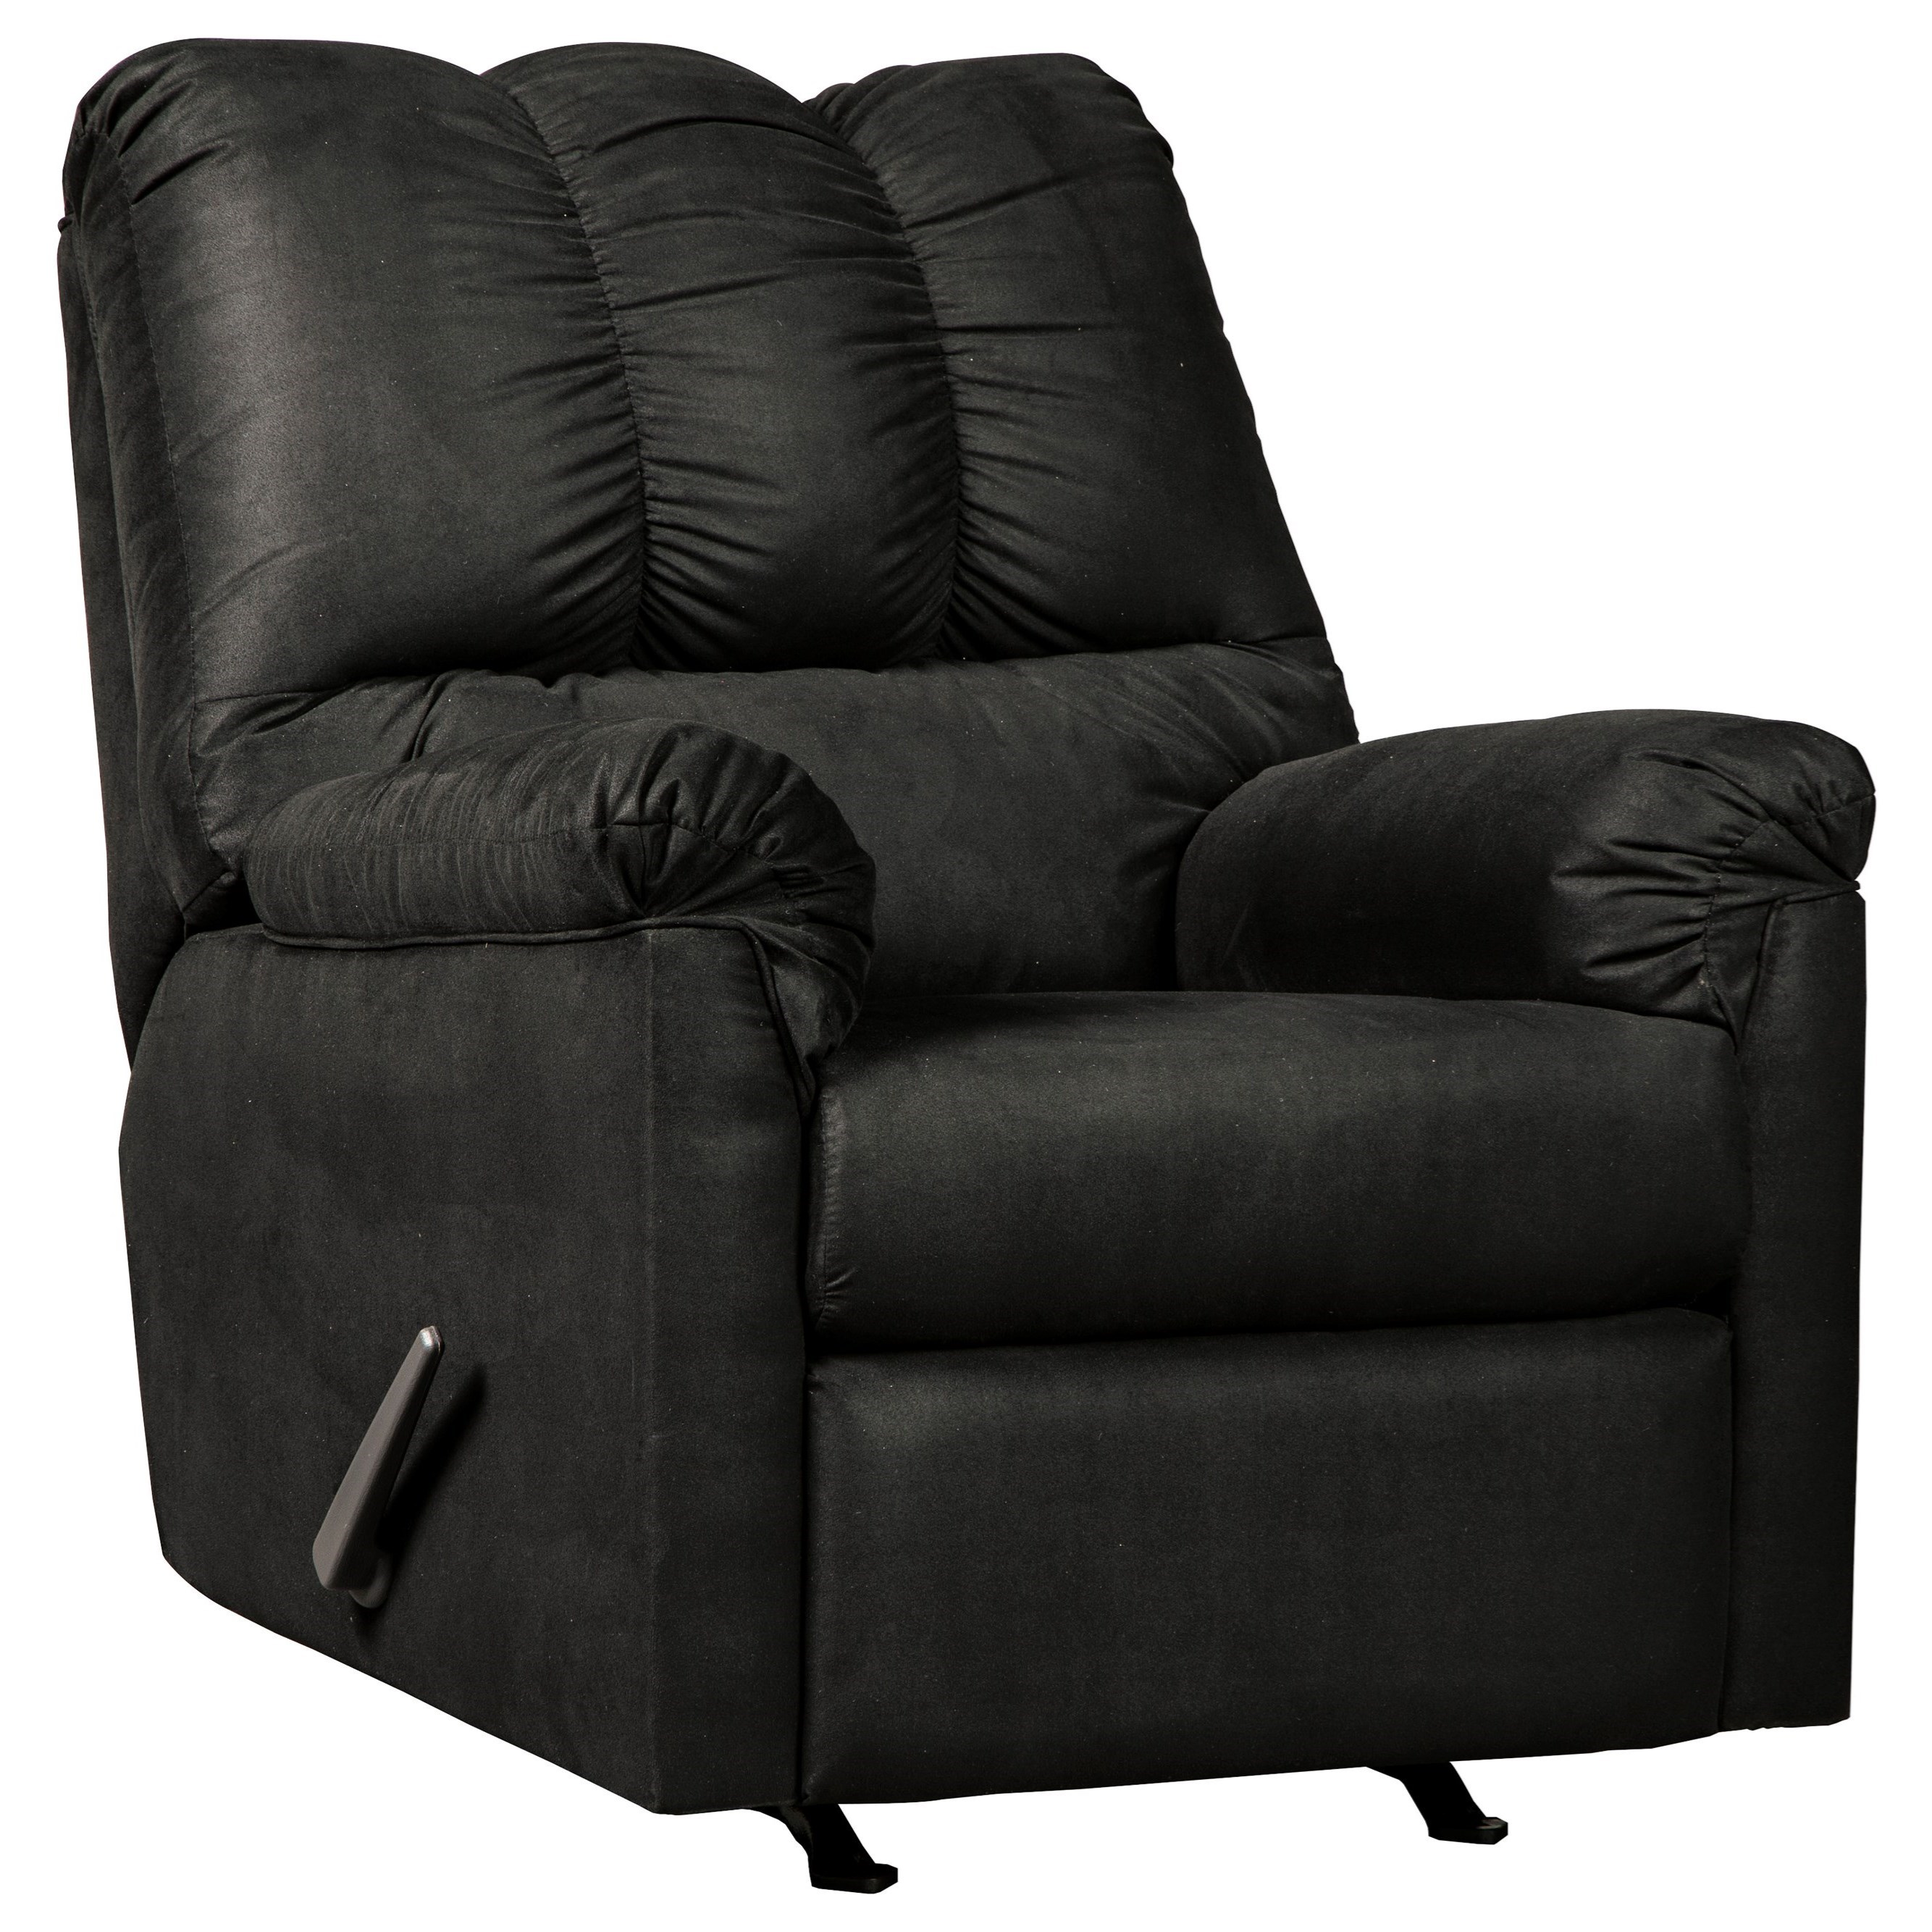 Darcy - Black Rocker Recliner by Signature Design by Ashley at Furniture Barn